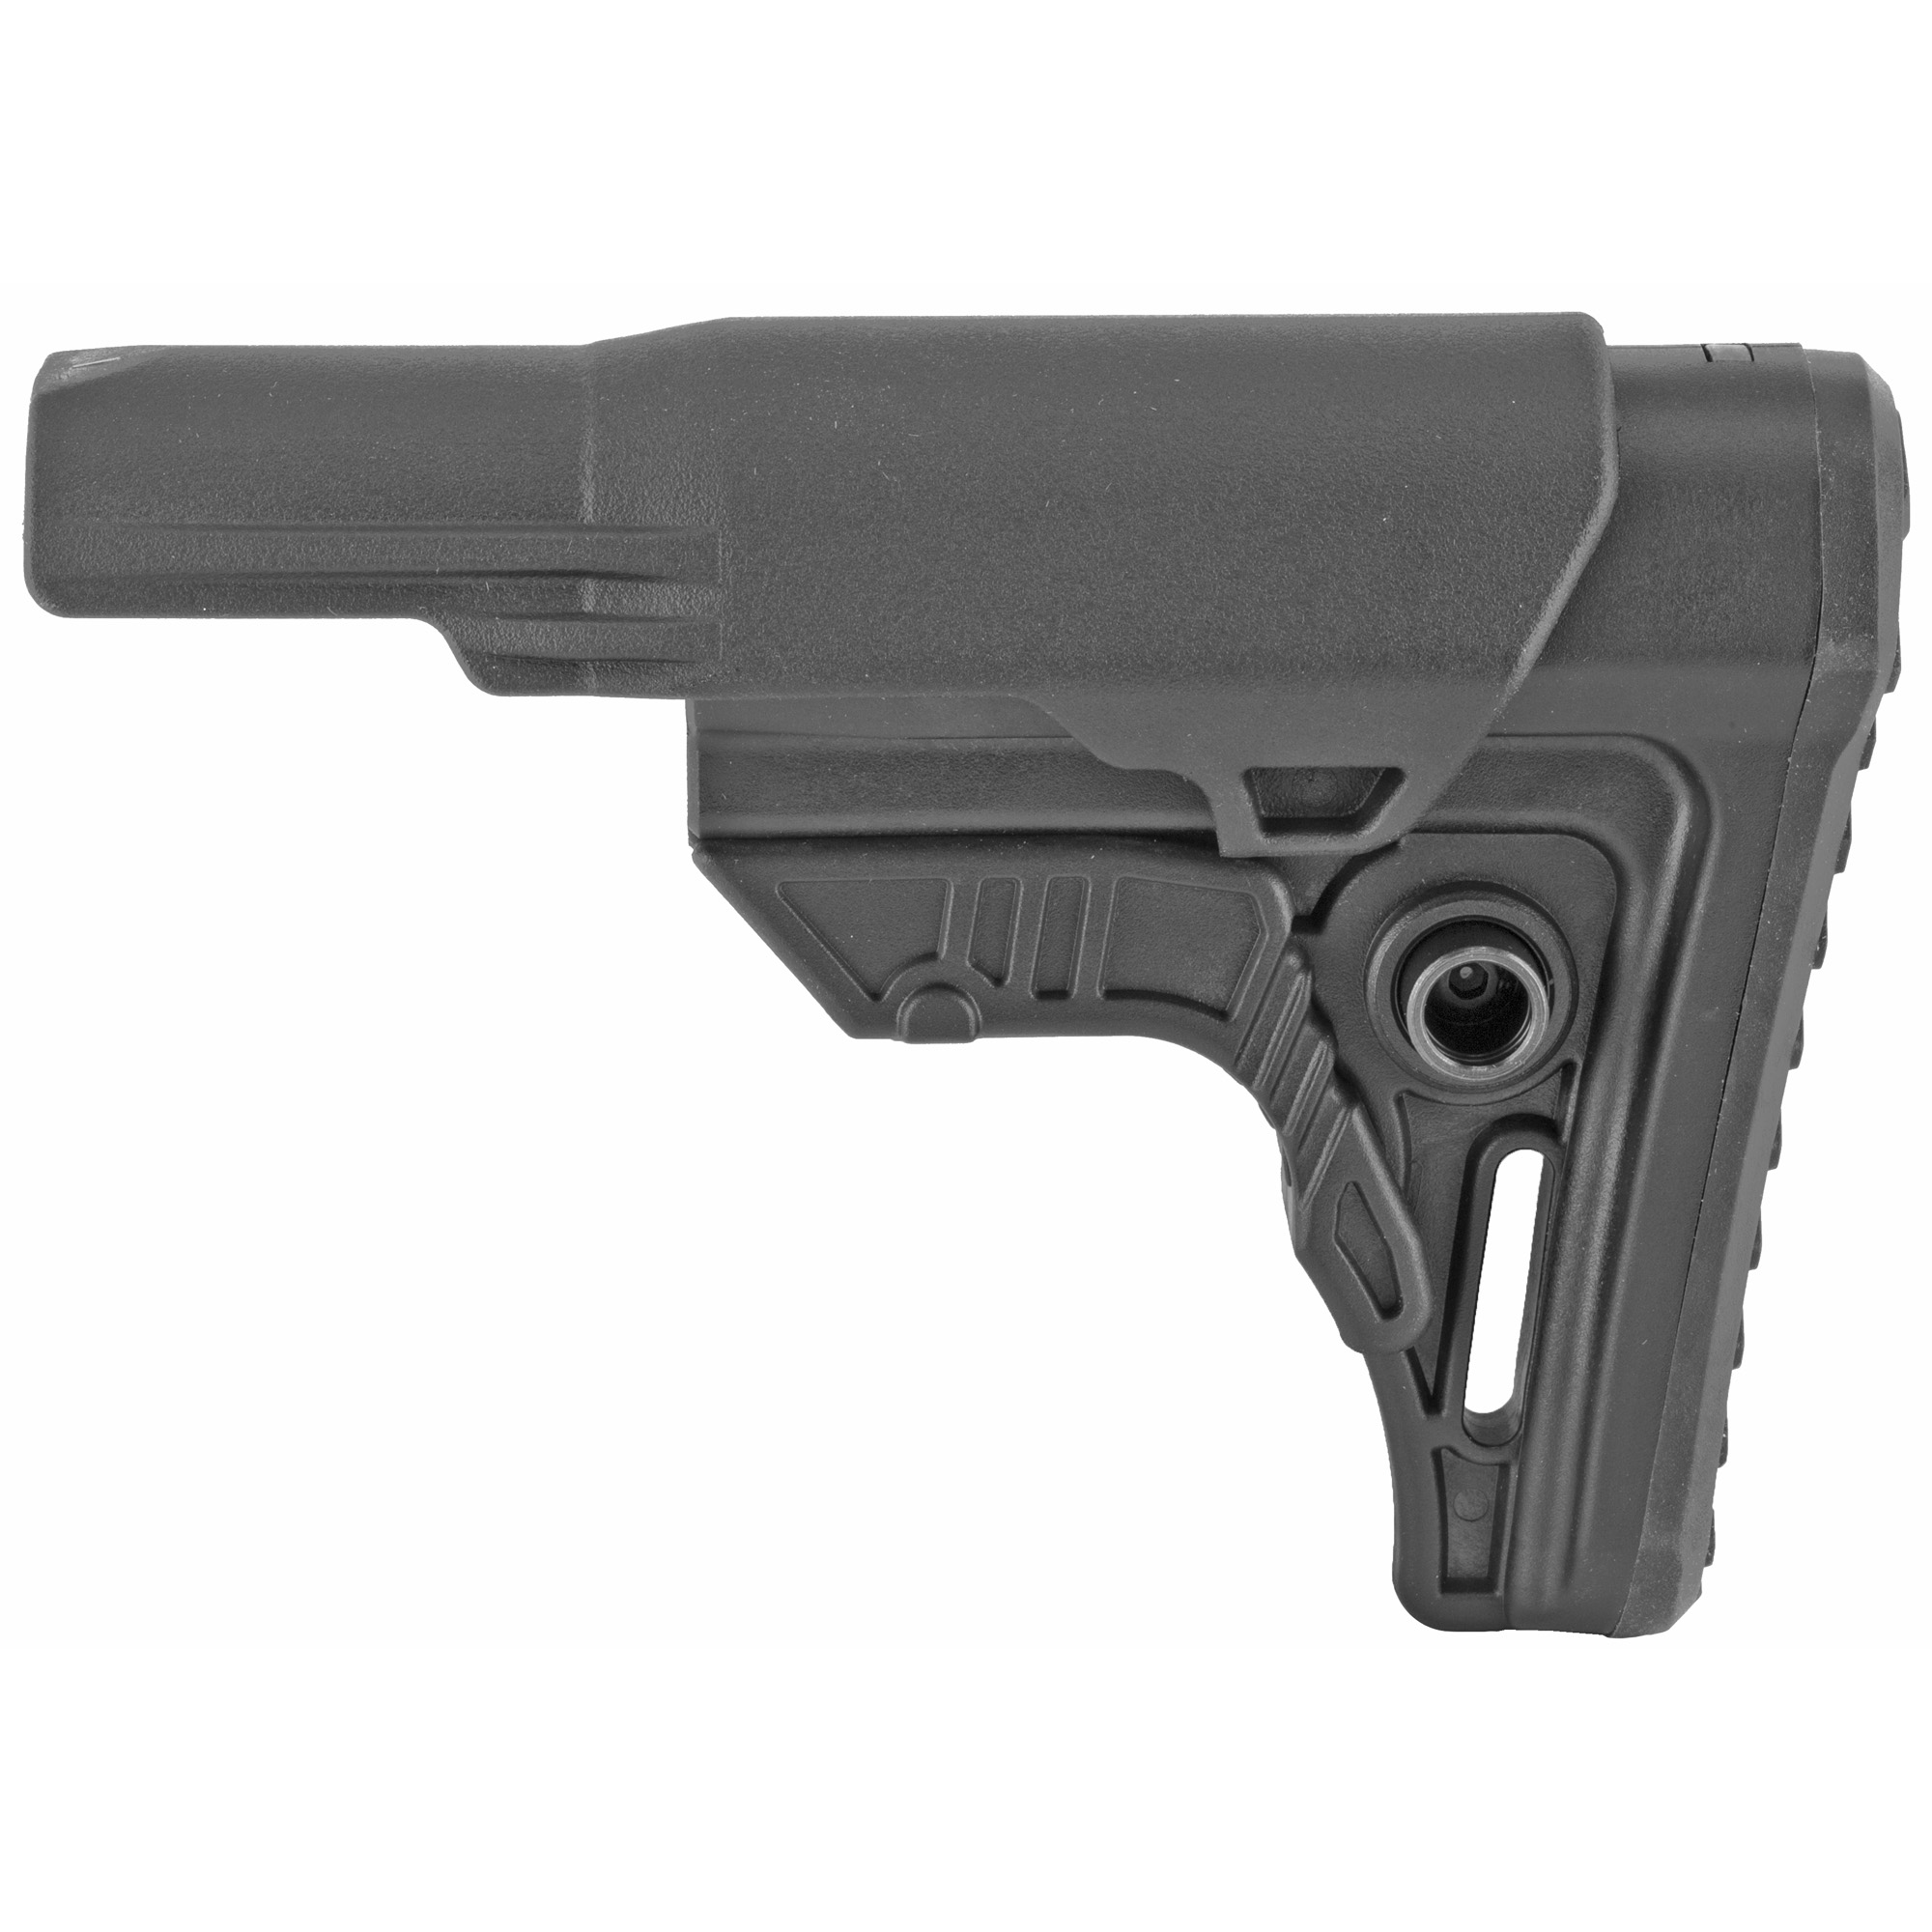 """This is a UTG PRO AR-15 Ops Ready S4 Mil-spec Stock molded from impact resistant high strength matte black polymer. Its unique 4.28"""" length with 4 position adjustability provides comfortable length of pull and ease of shouldering firearm when wearing a load bearing vest or plate carrier system. It is built for heavy duty use with the tightest tolerance controls to provide the most secure fit and function. Includes slanted cheek rest and removable 5.51"""" extended cheek rest insert"""" rubberized butt pad"""" reversible sling swivel housing and standard sling loop."""